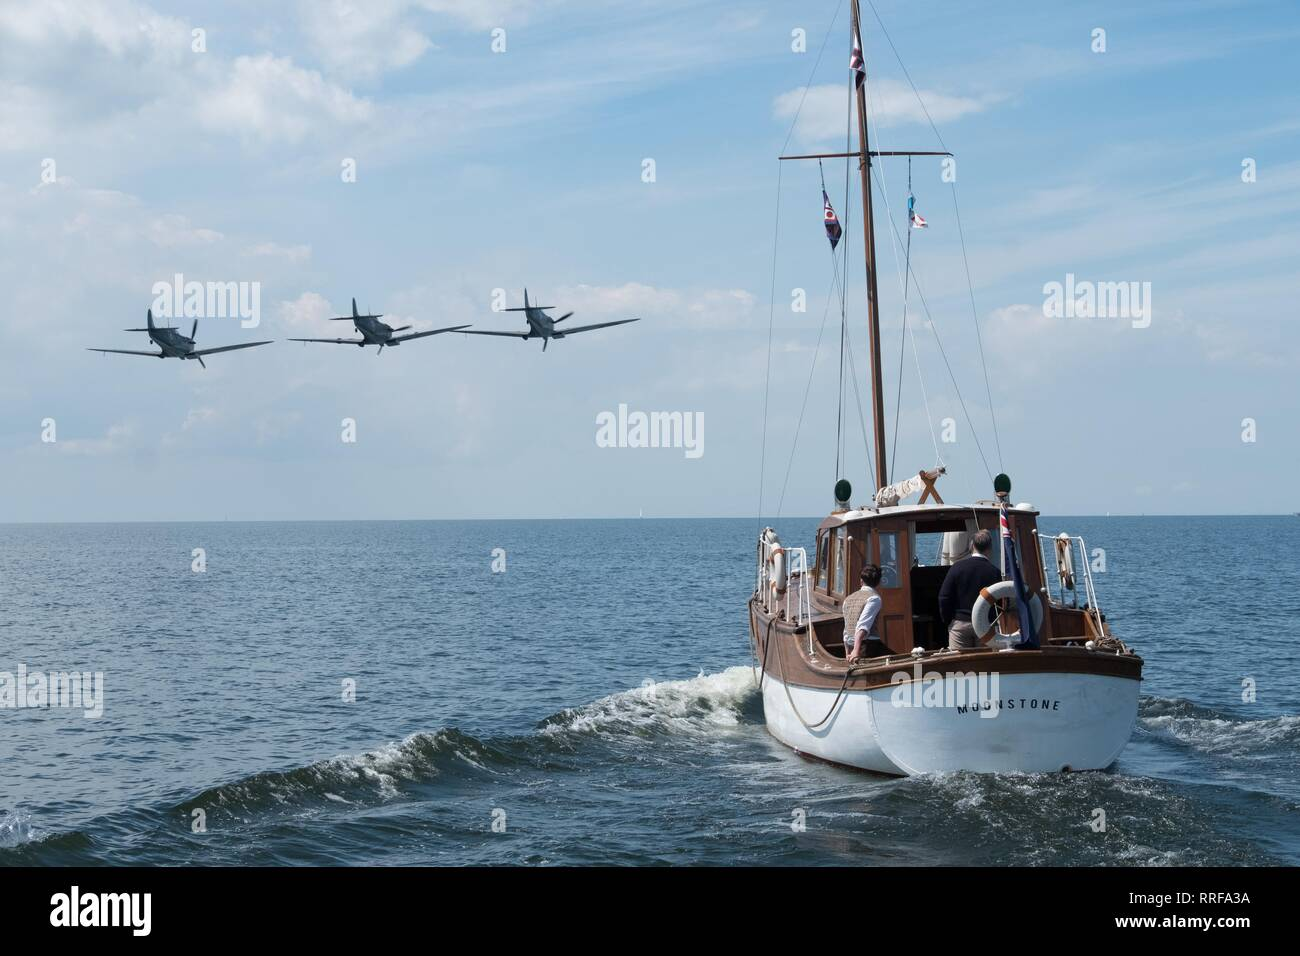 DUNKIRK, PLANES FLY PAST SAILING BOAT, 2017 - Stock Image